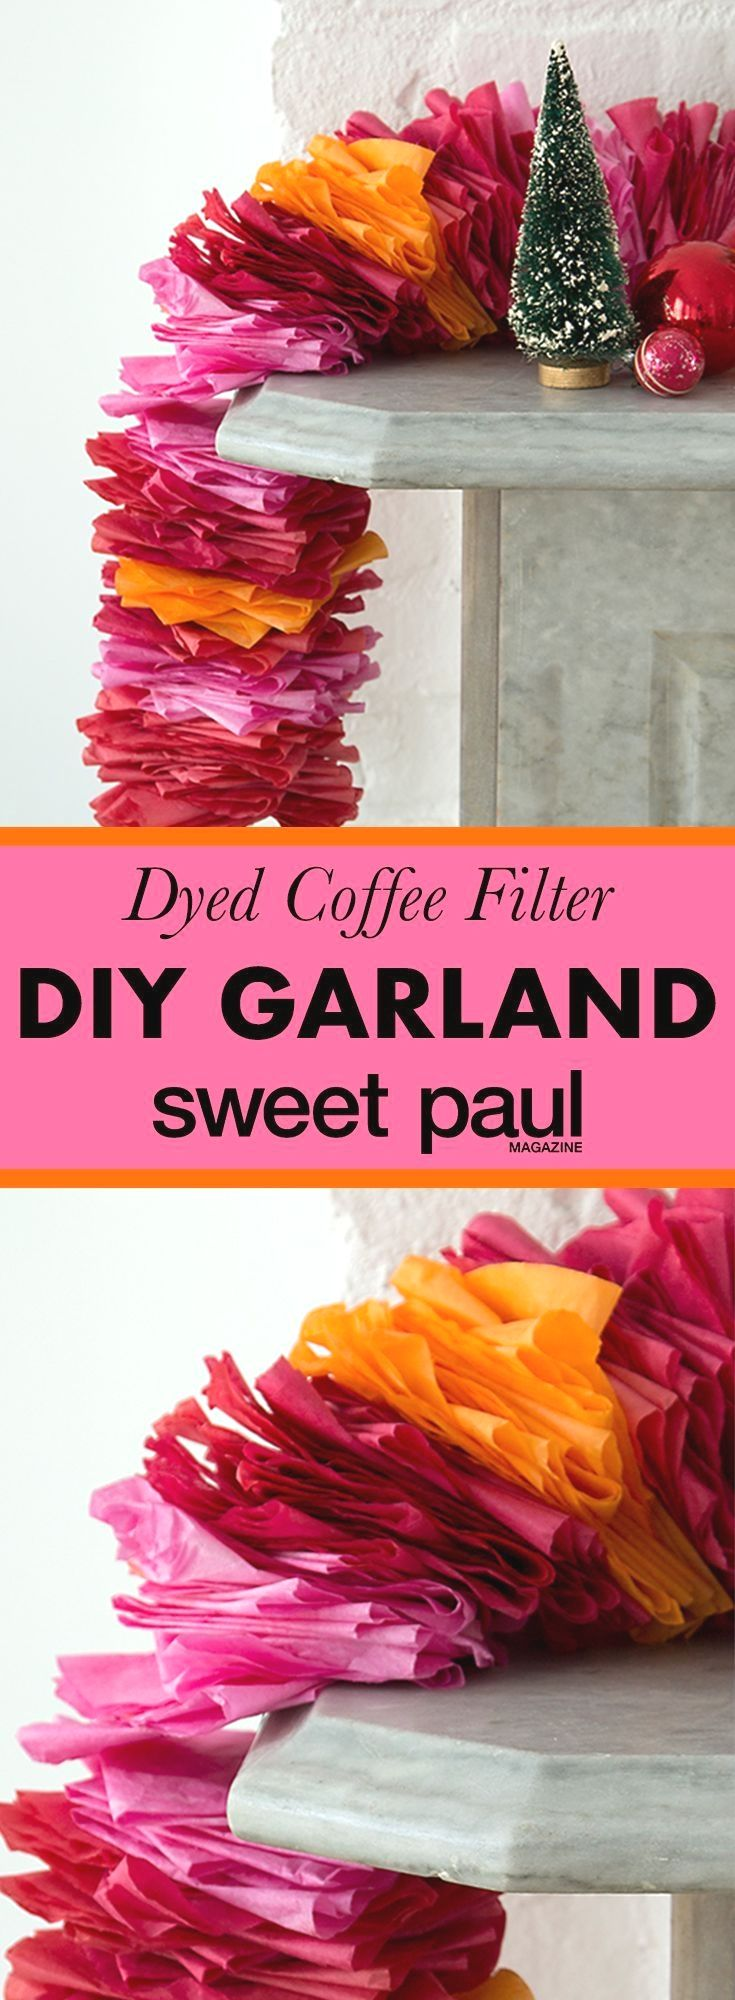 Pin by mackenzieoavtuwk on DIY in 2020 Coffee filter